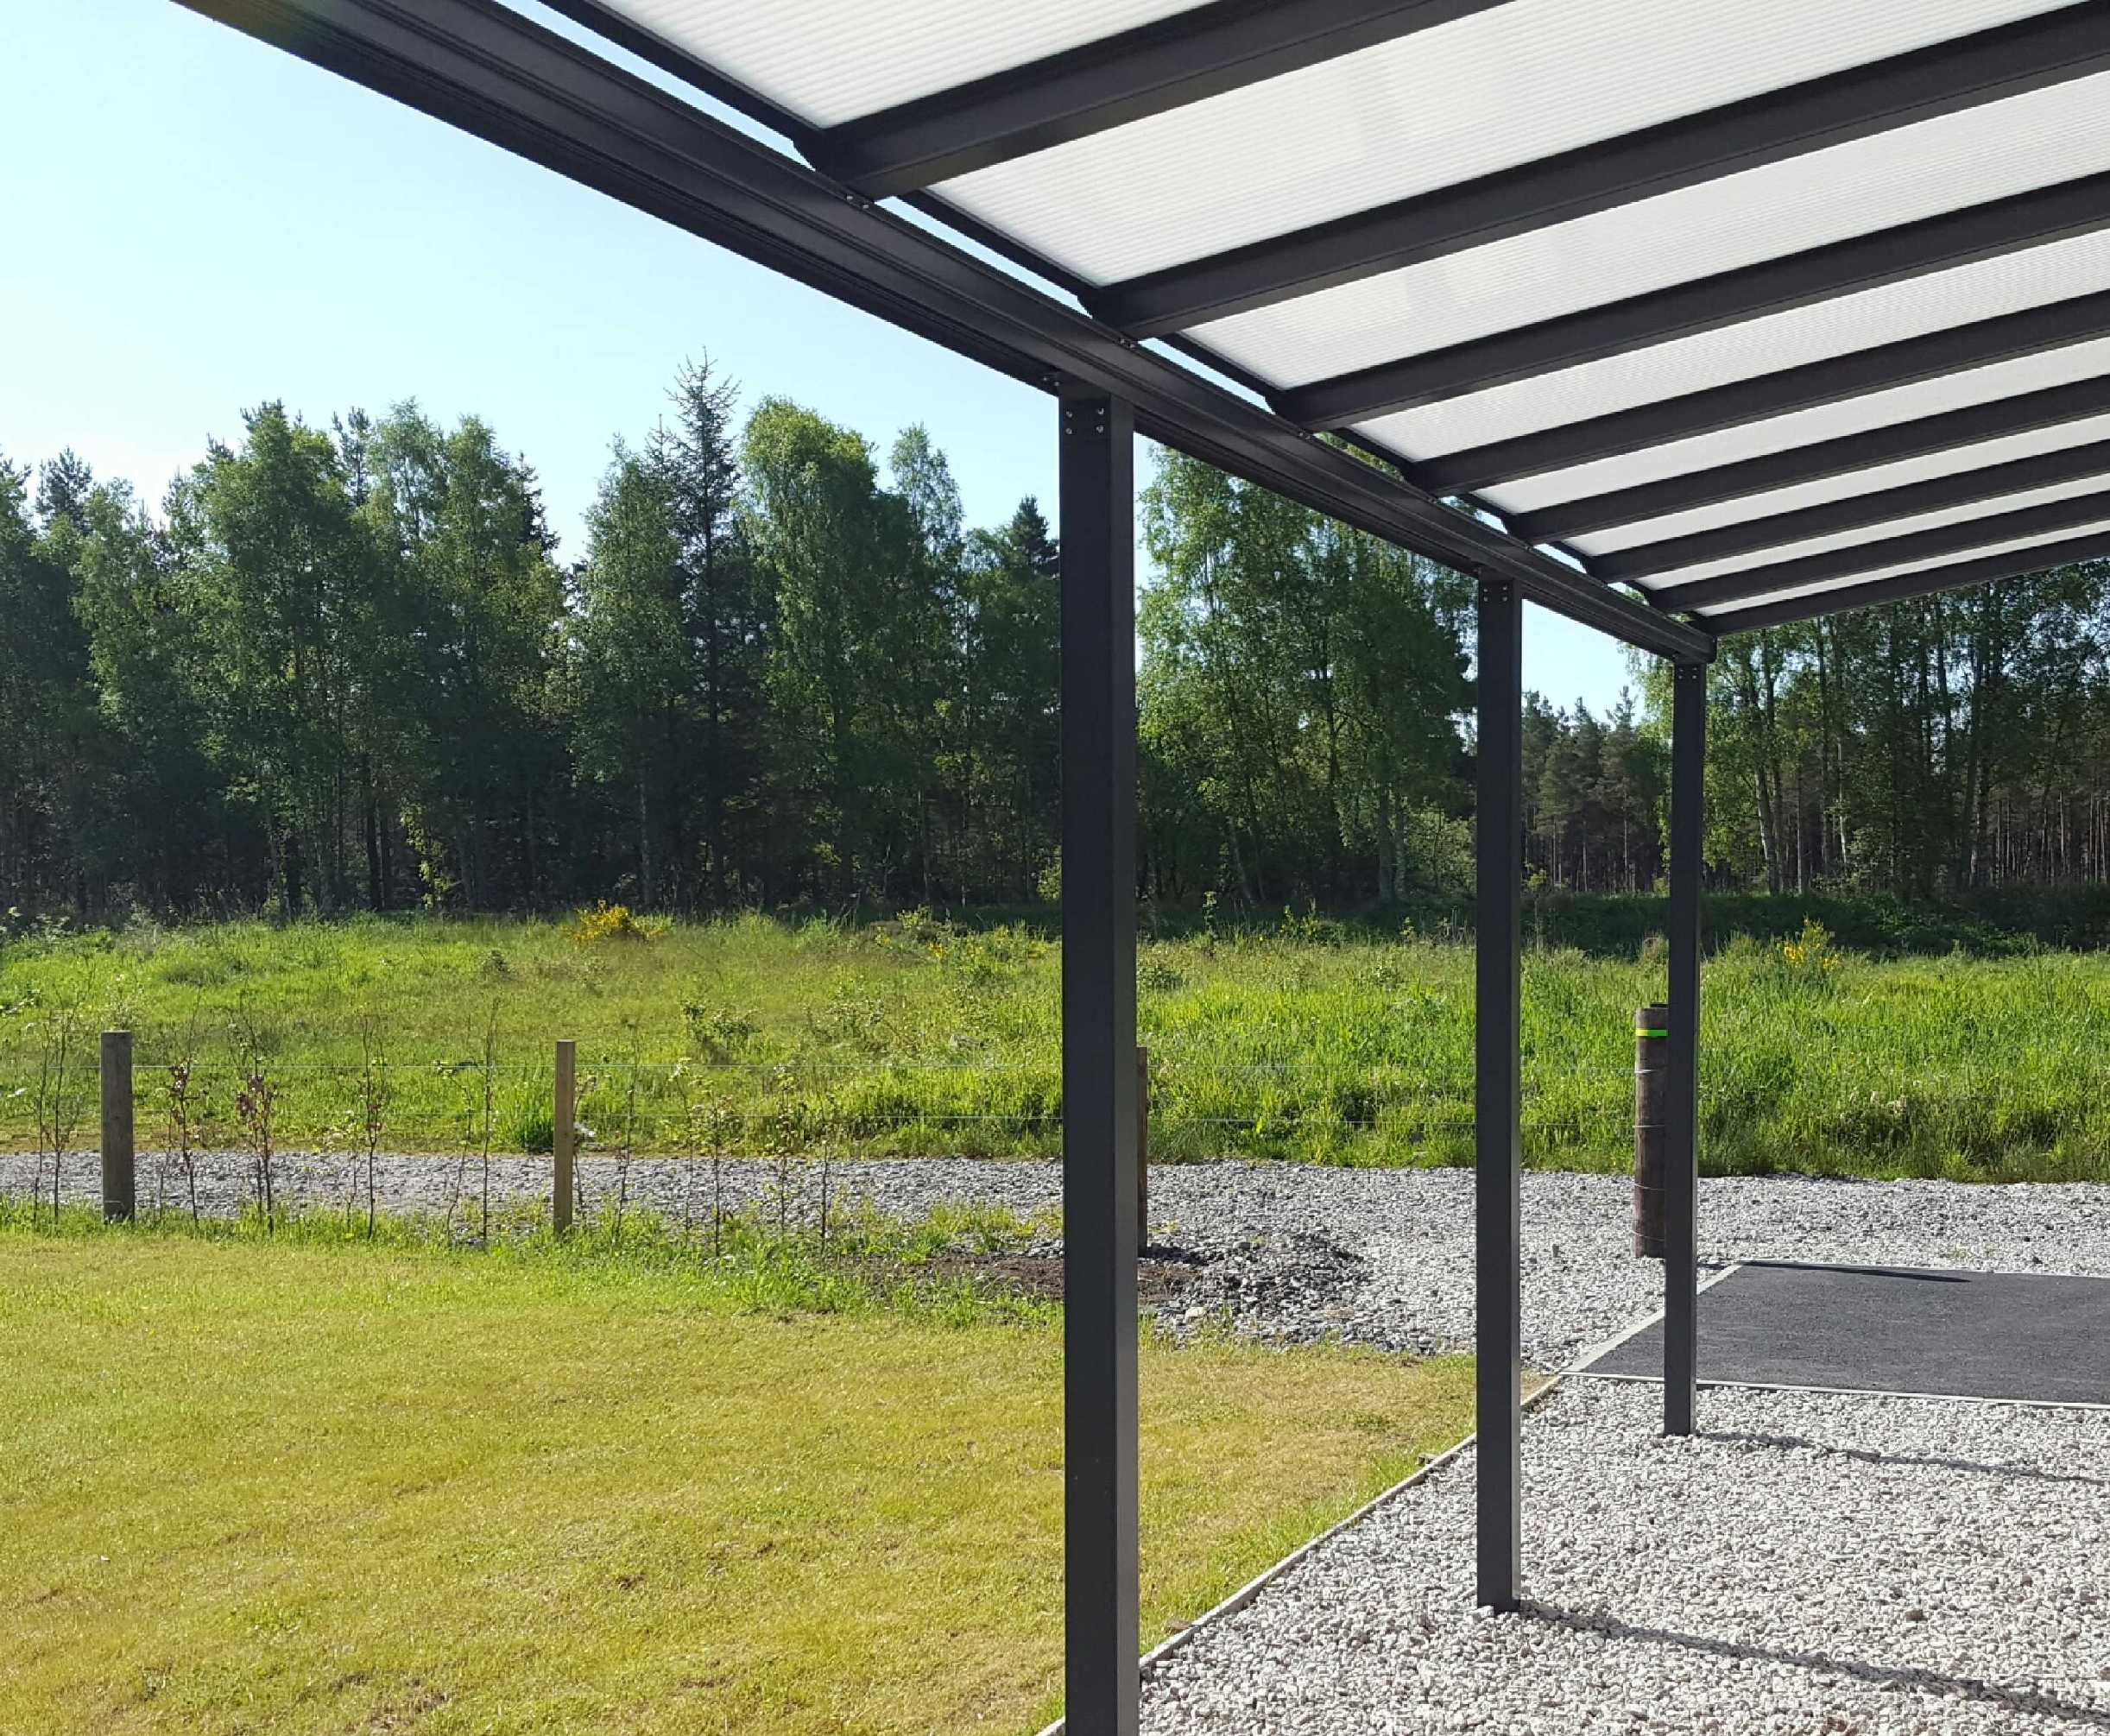 Omega Smart Lean-To Canopy, Anthracite Grey, 16mm Polycarbonate Glazing - 12.0m (W) x 1.5m (P), (5) Supporting Posts